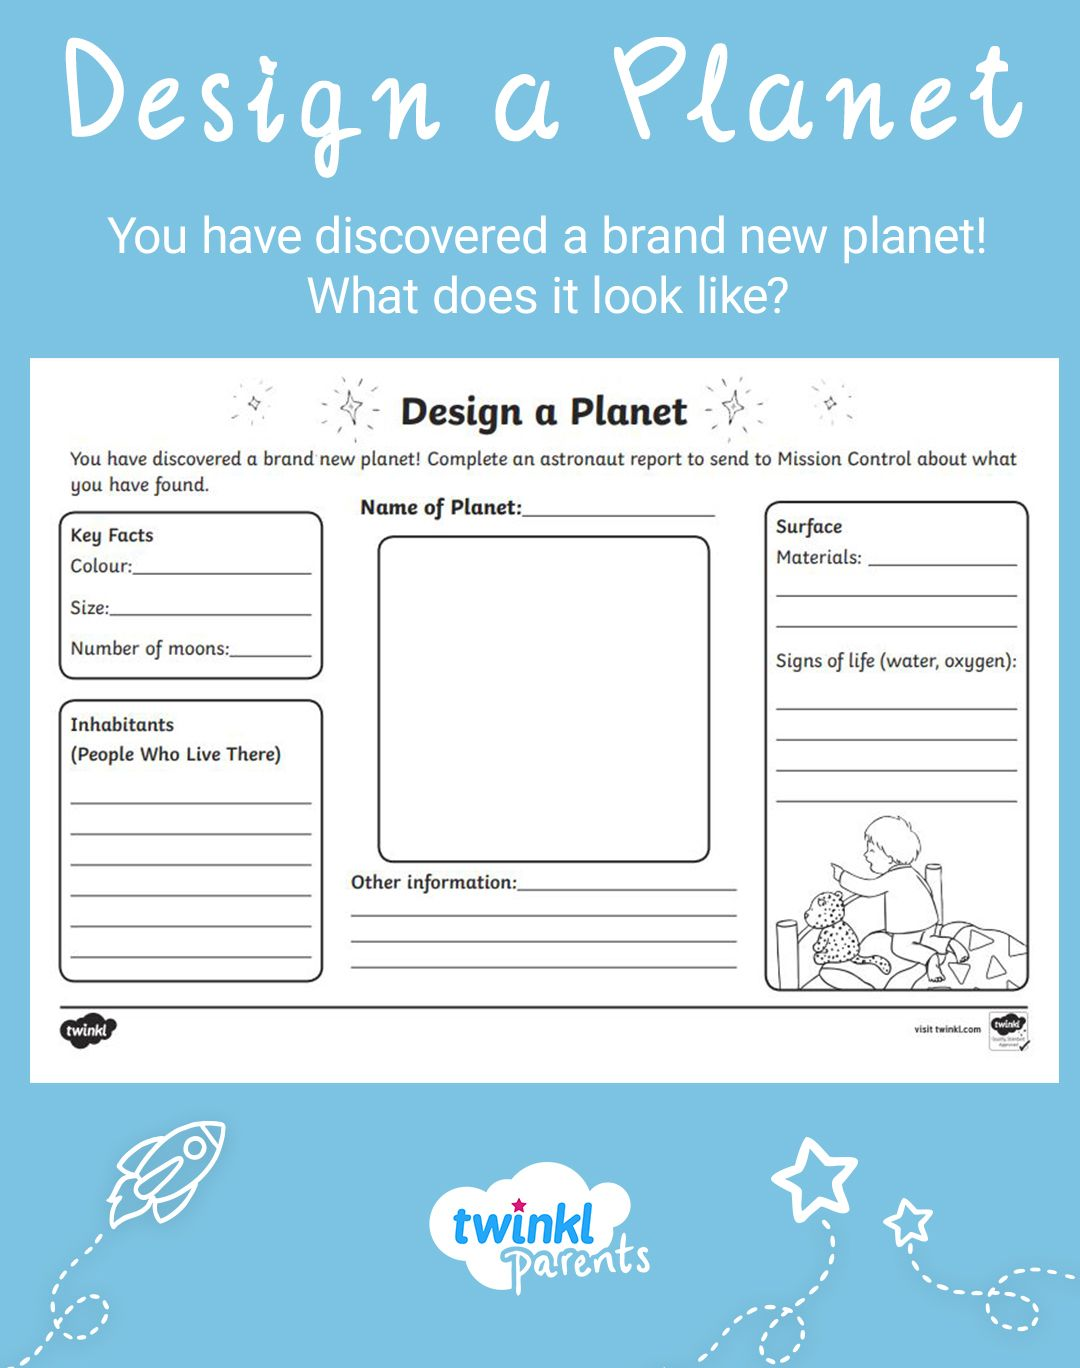 Design Your Own Planet Worksheet Planets Activities Space Activities For Kids Planet For Kids [ 1368 x 1080 Pixel ]